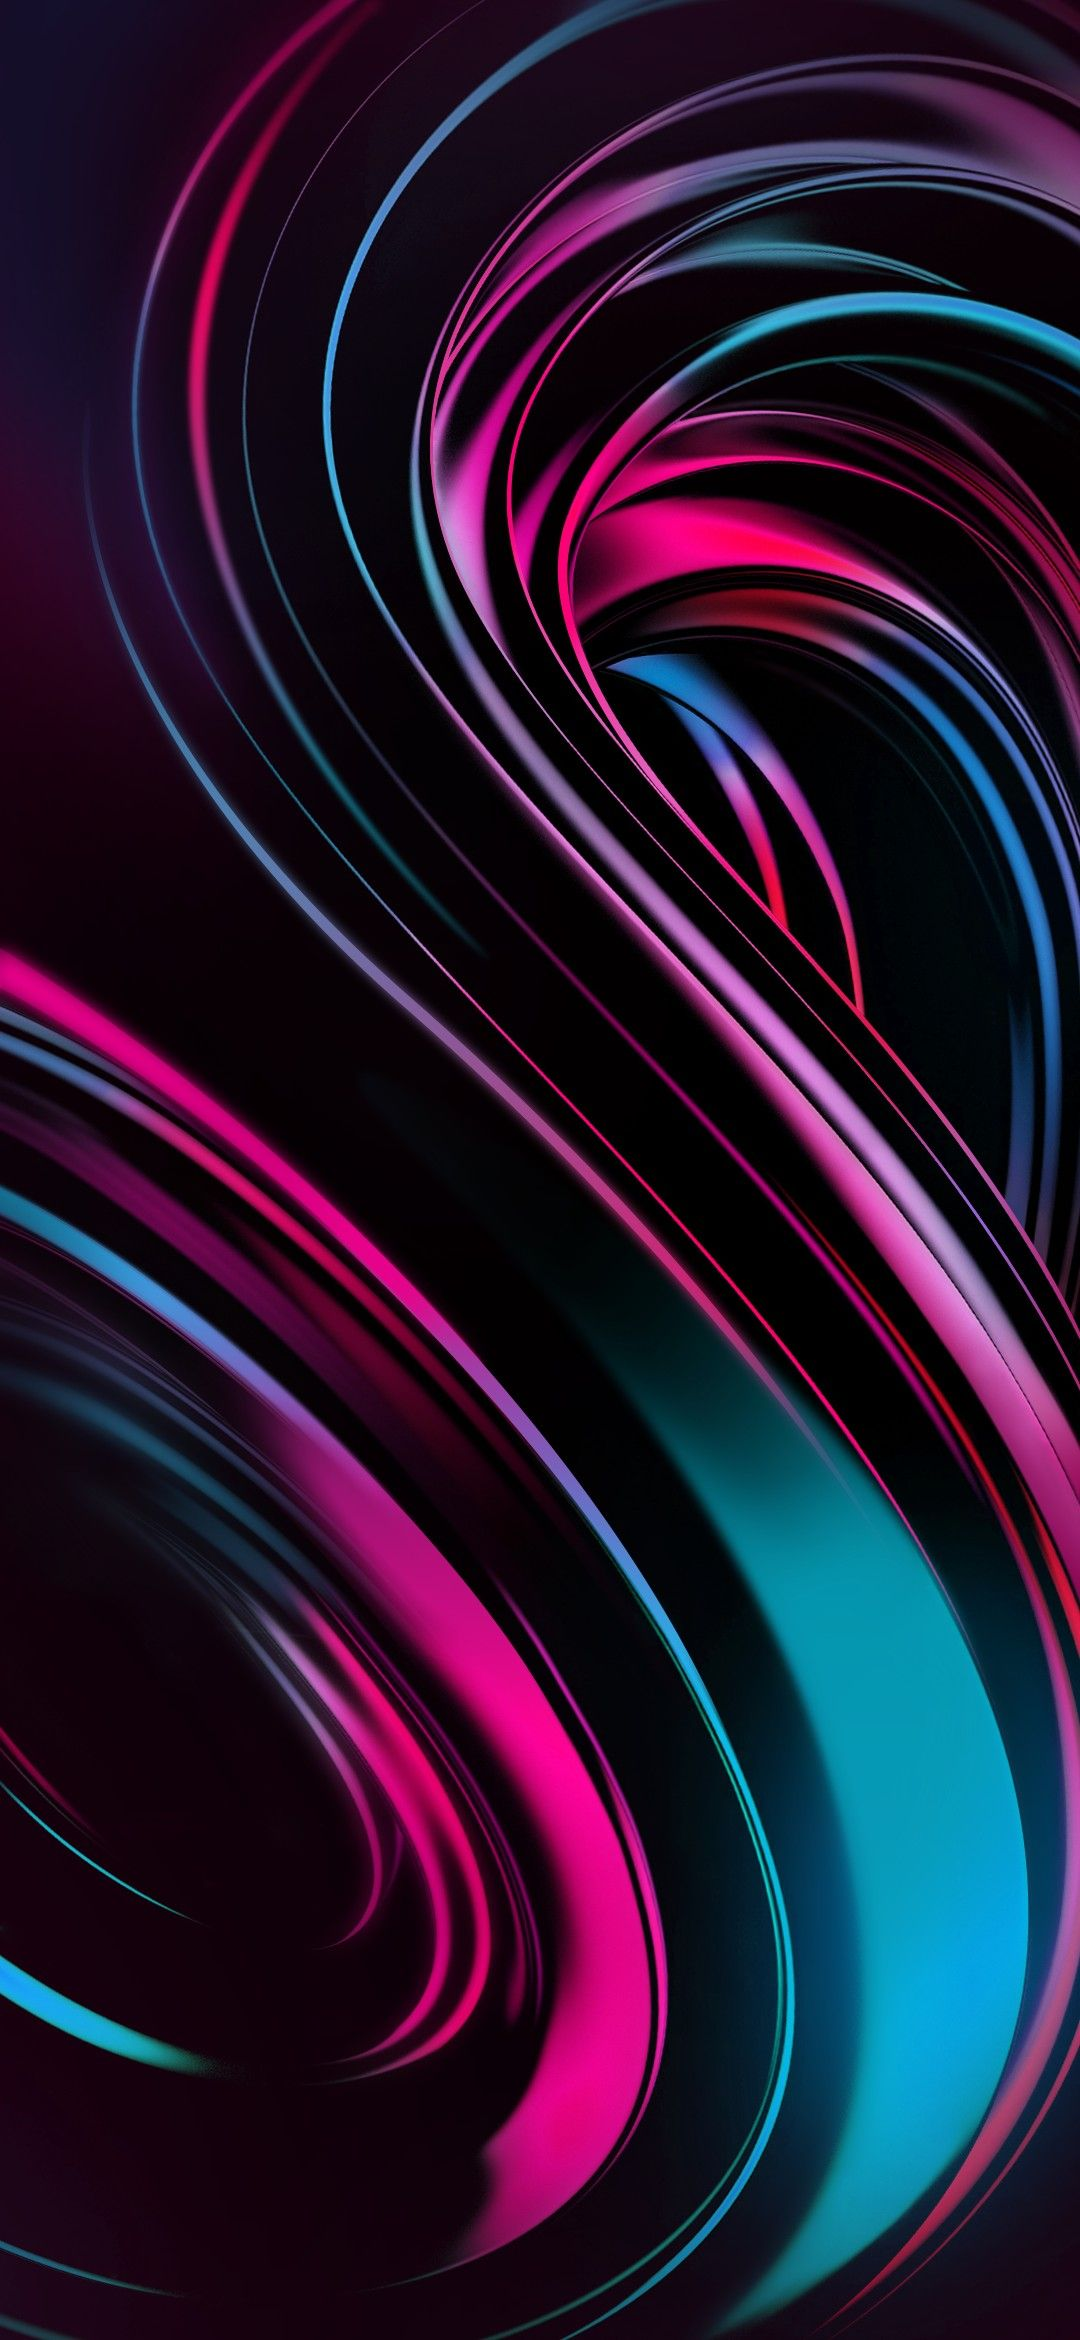 32 ] Vivo Wallpaper On WallpaperSafari